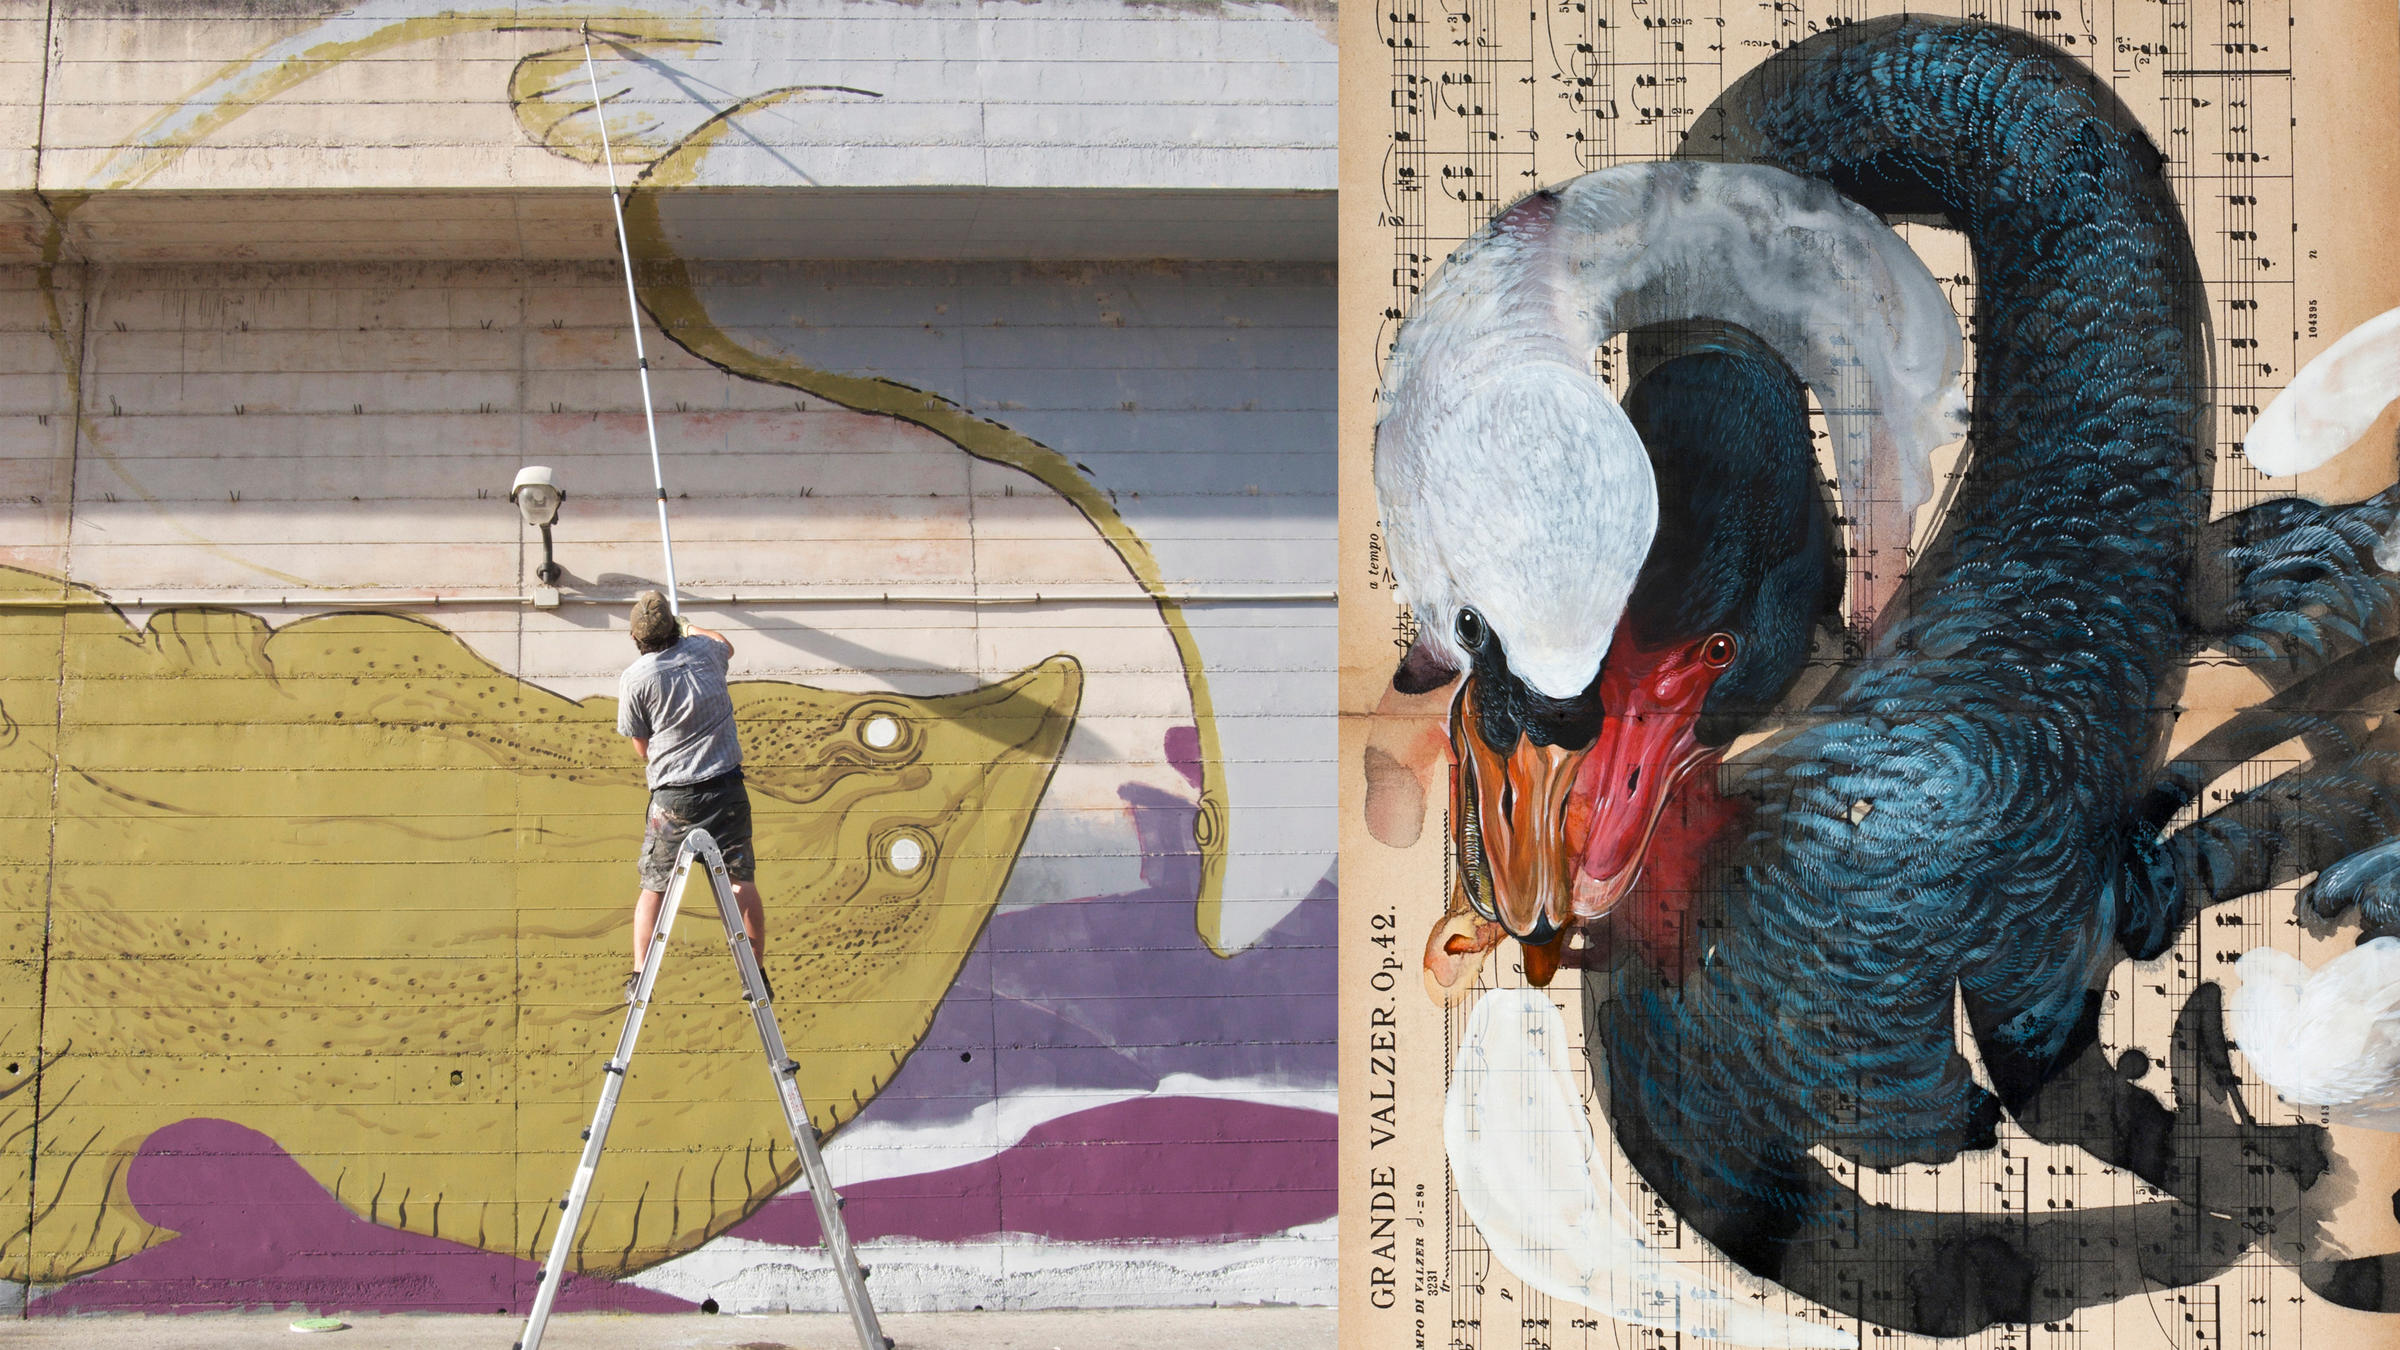 Left: Hitnes works on a mural in Campobasso, Italy. Photo: S. Roccia; Right: Painting by Hitnes.